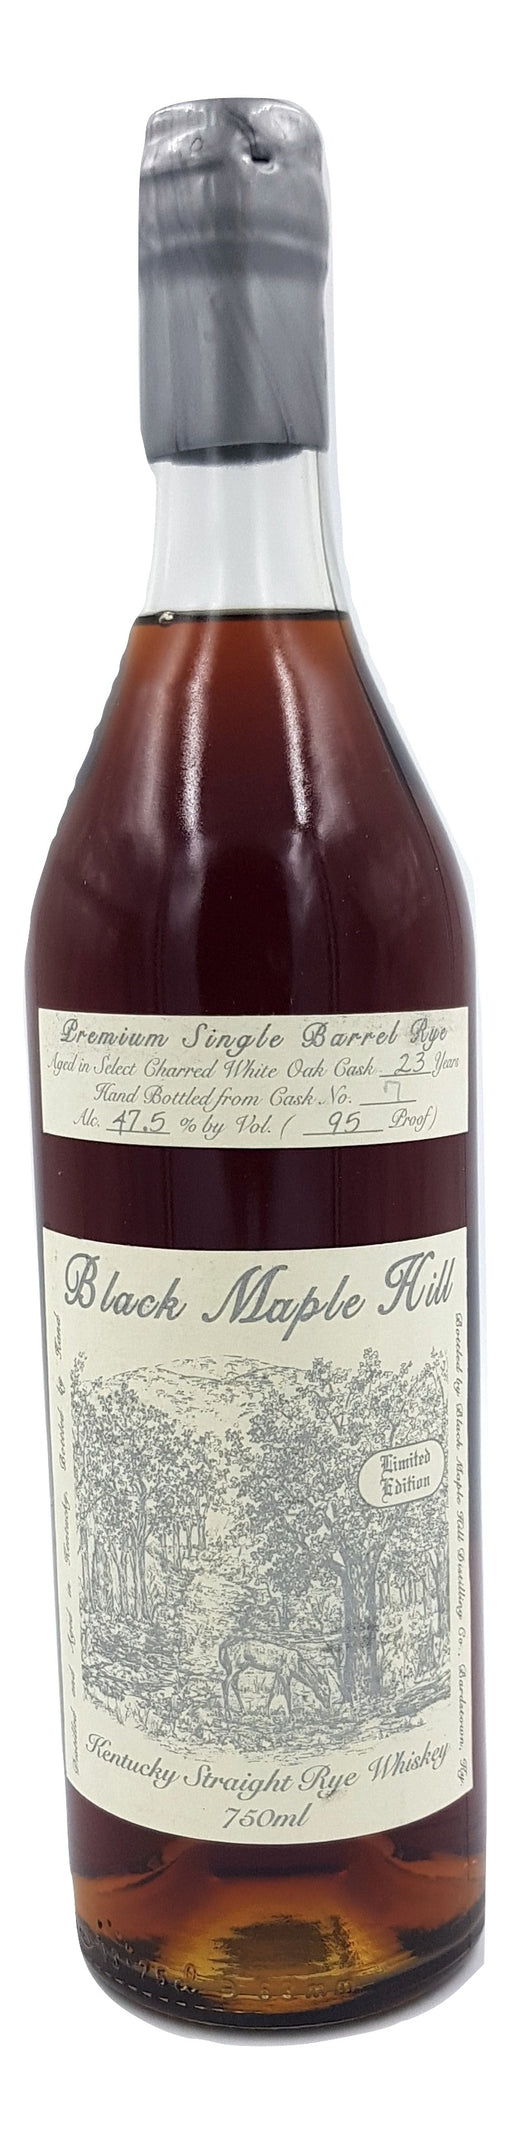 Black Maple Hill 23 Year Old Rye - Cask 1 For Sale - NativeSpiritsOnline